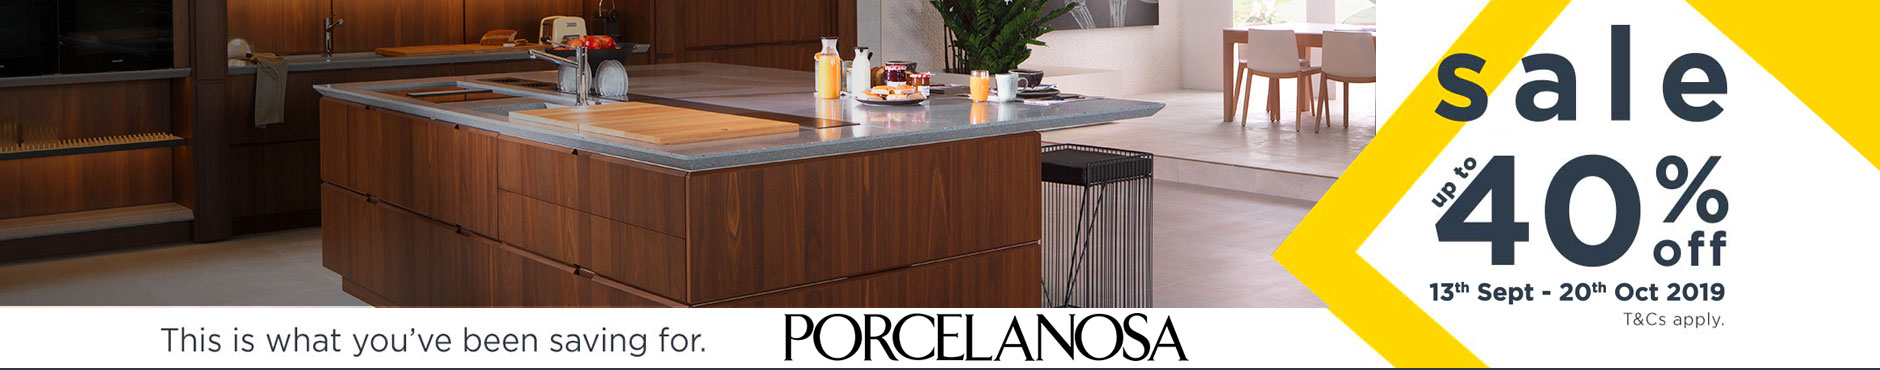 Porcelanosa Sale 13th Sept - 20th Oct 2019